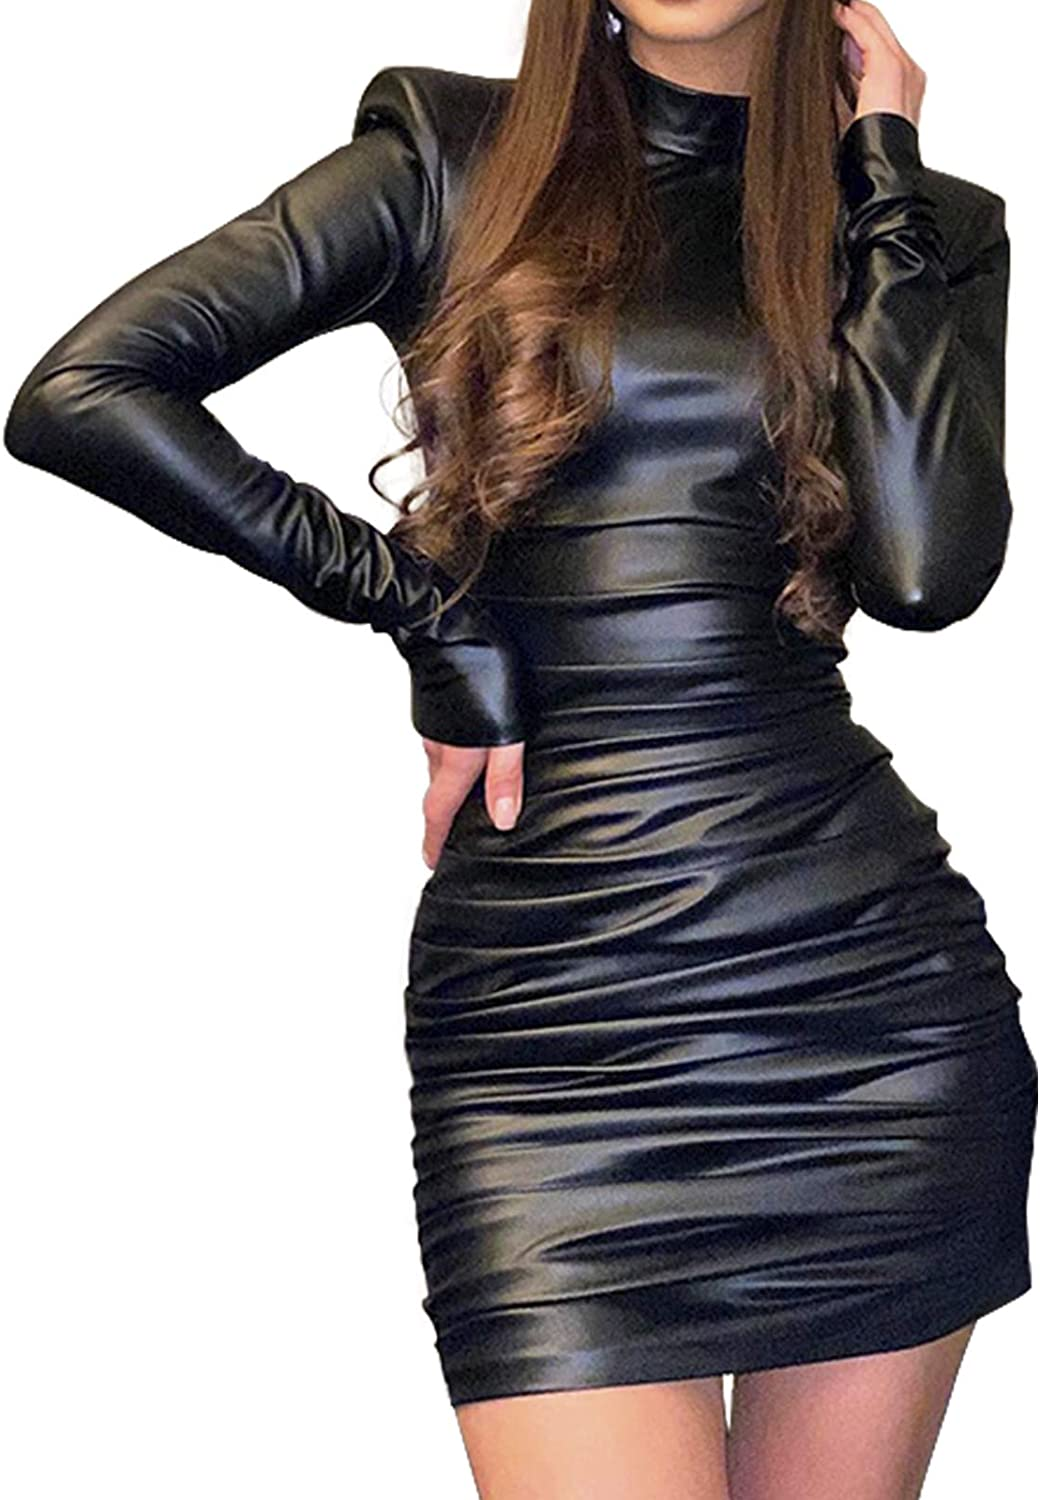 GUXMO Womens Bodycon Long Sleeve Dresses Glitter Sexy Ruched Mini Dress with Shoulder Pads Party Club Night Outfit